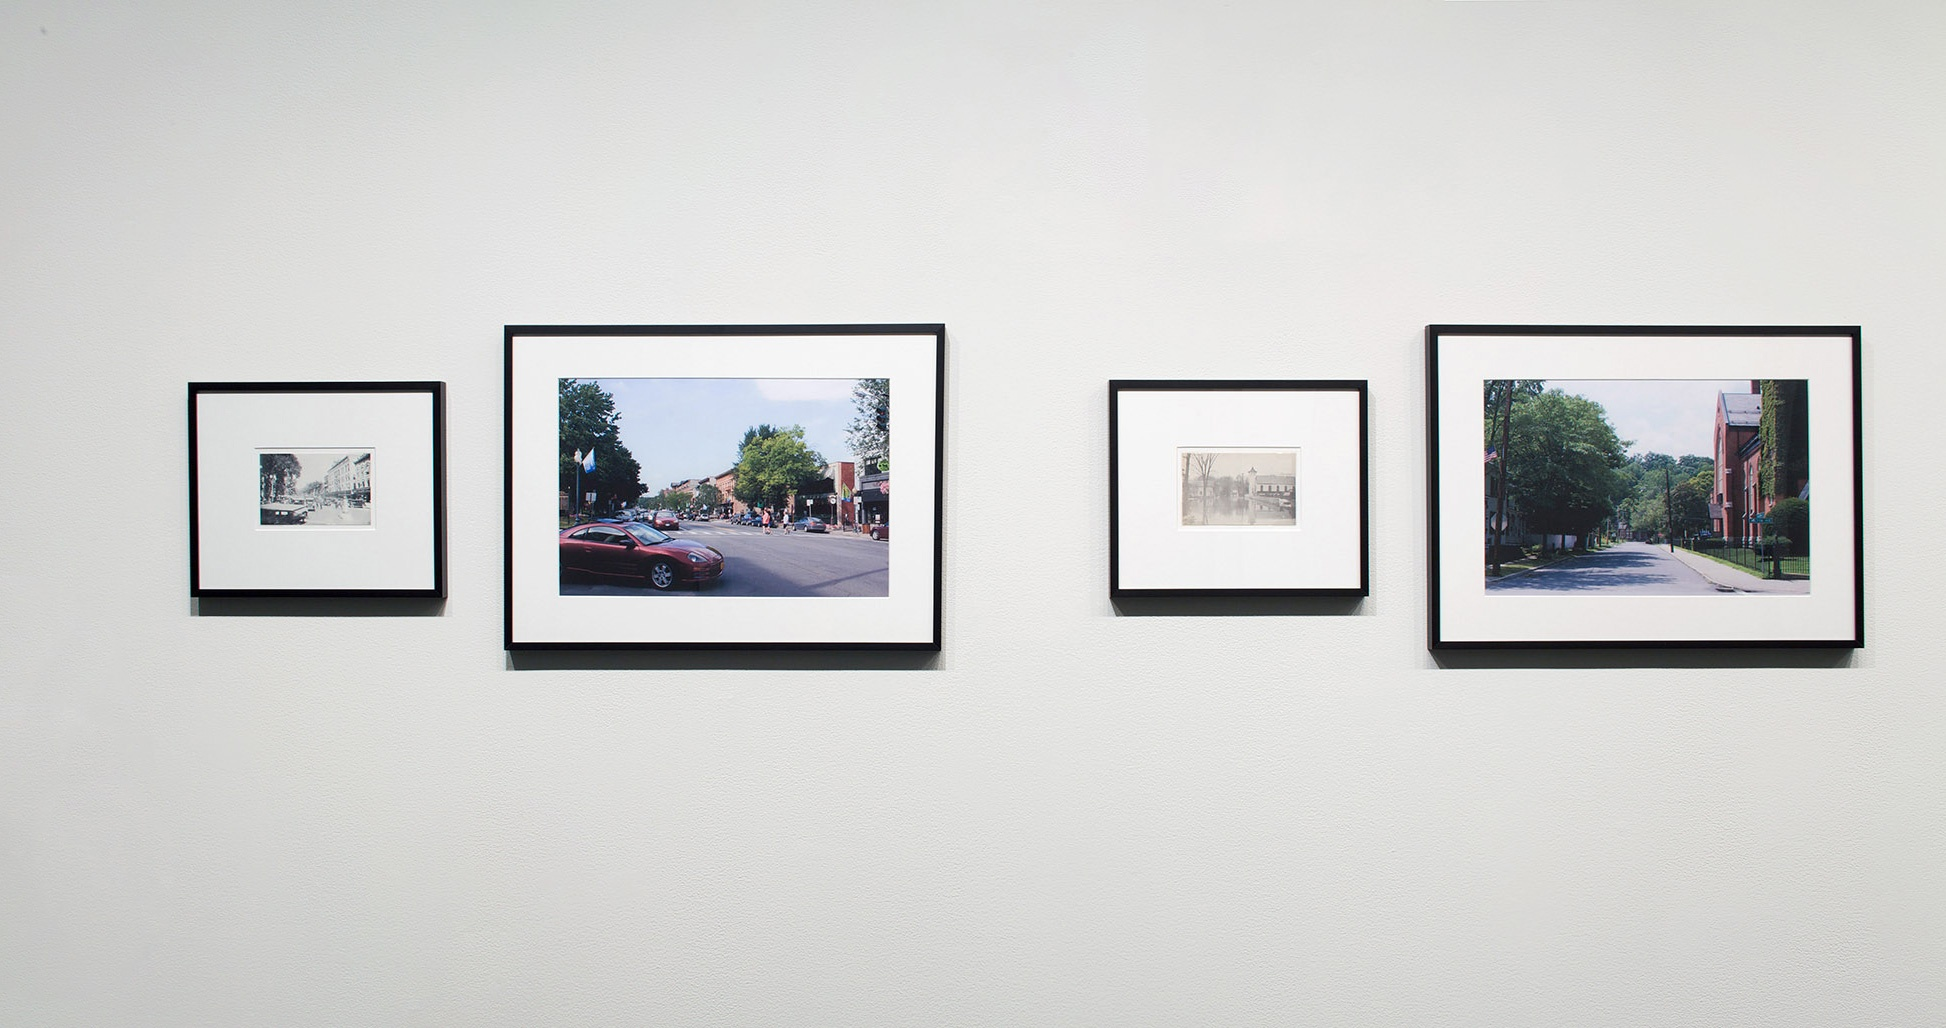 Four framed photographs, two black and white and two colored, of village scenes hang on a white wall.